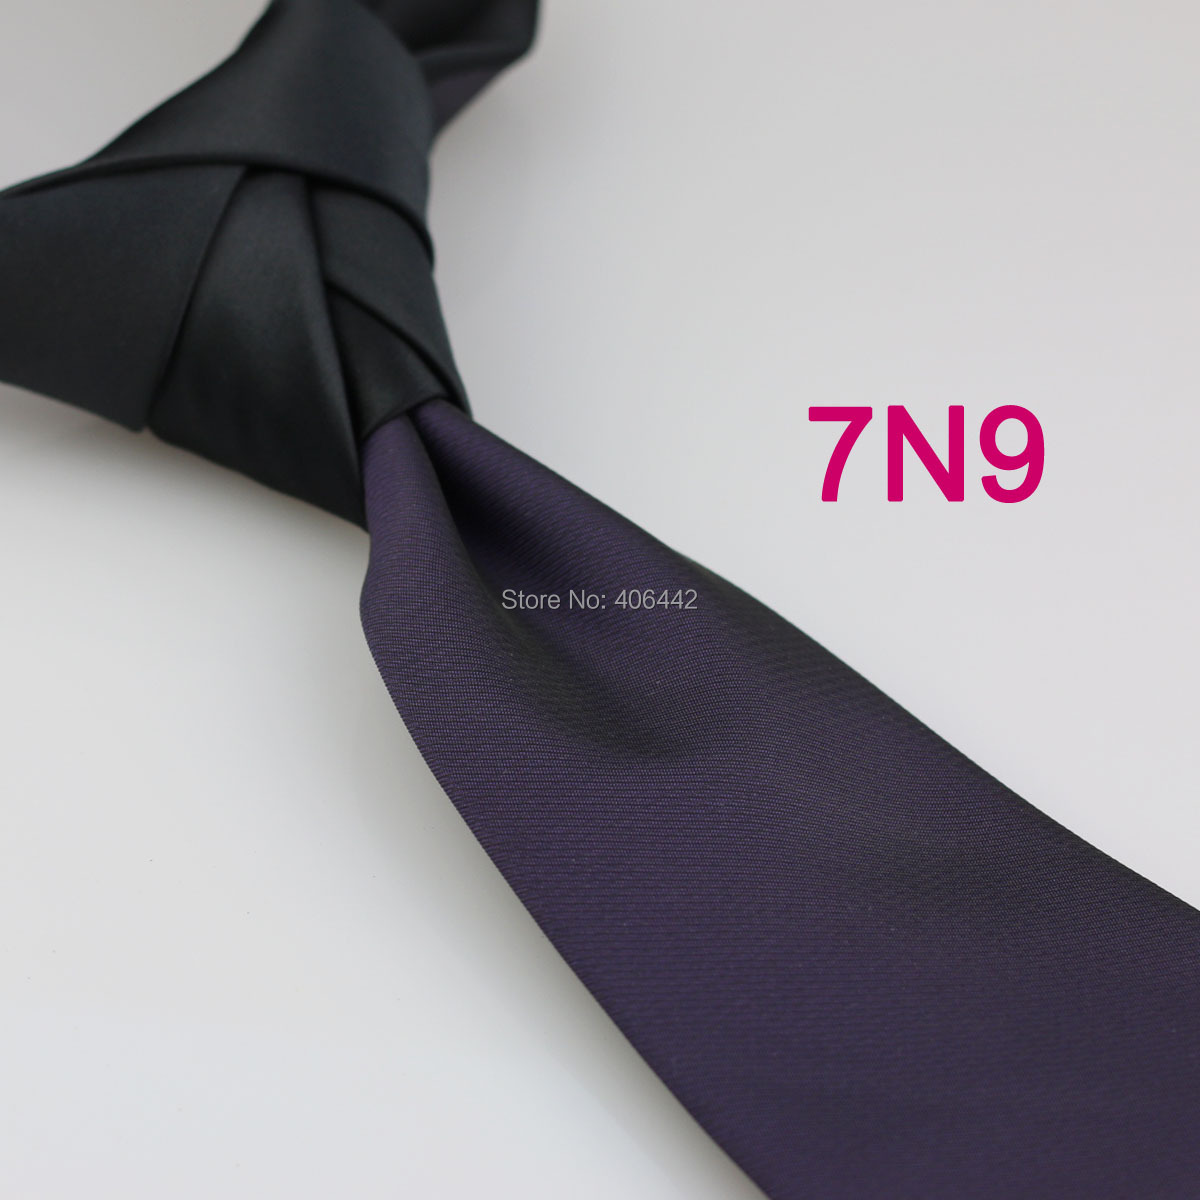 Yibei Coachella Ties Patchwork Black Knot Corbata Contrast Formal Neckties Woven Purple Neck Tie Two Tone Gravata Wedding Dress Men's Ties & Handkerchiefs